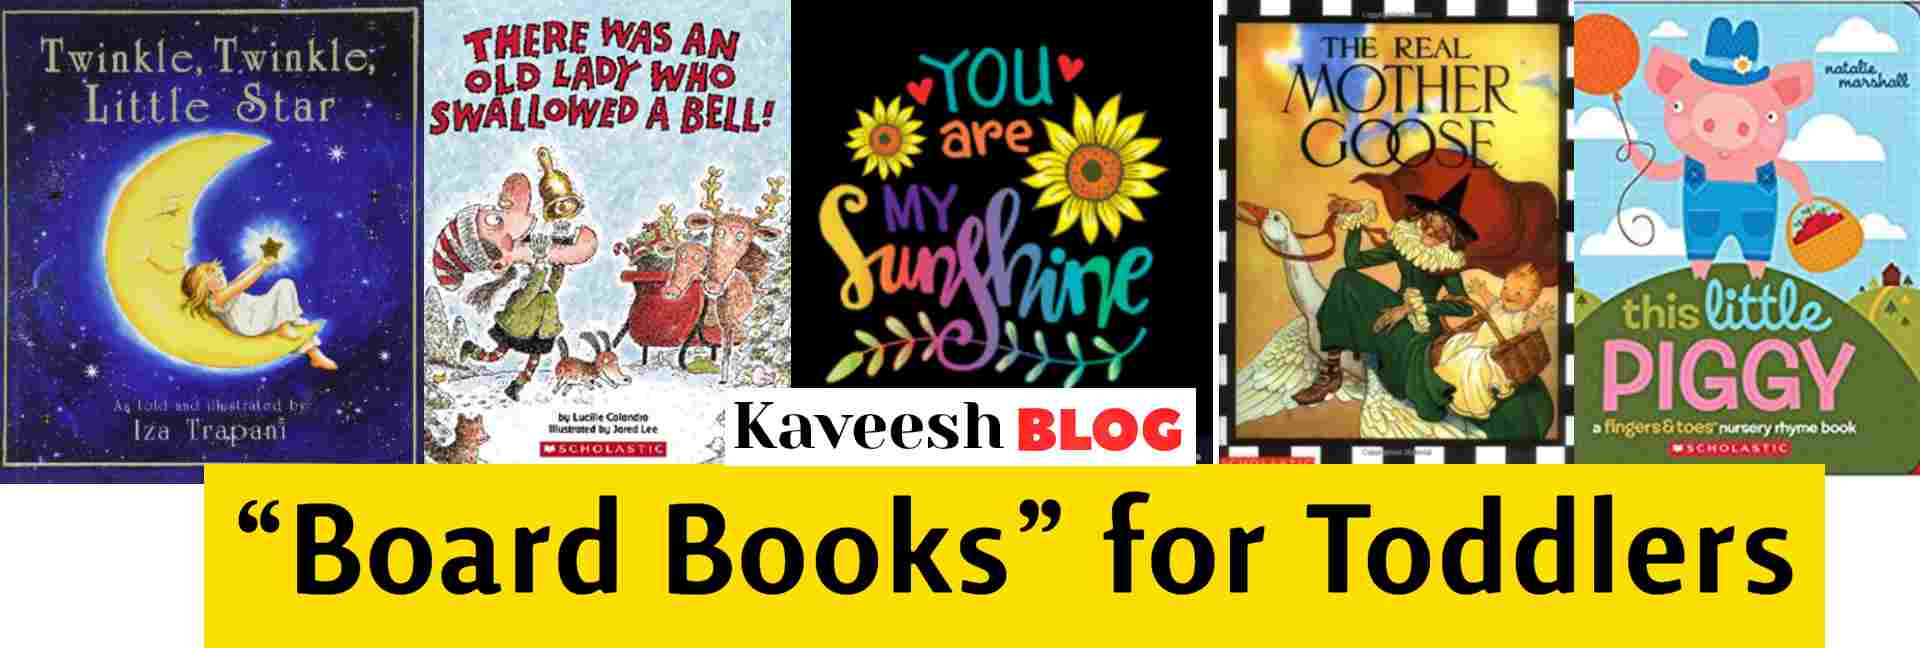 "Board Books"" for Toddlers-kaveesh.com"